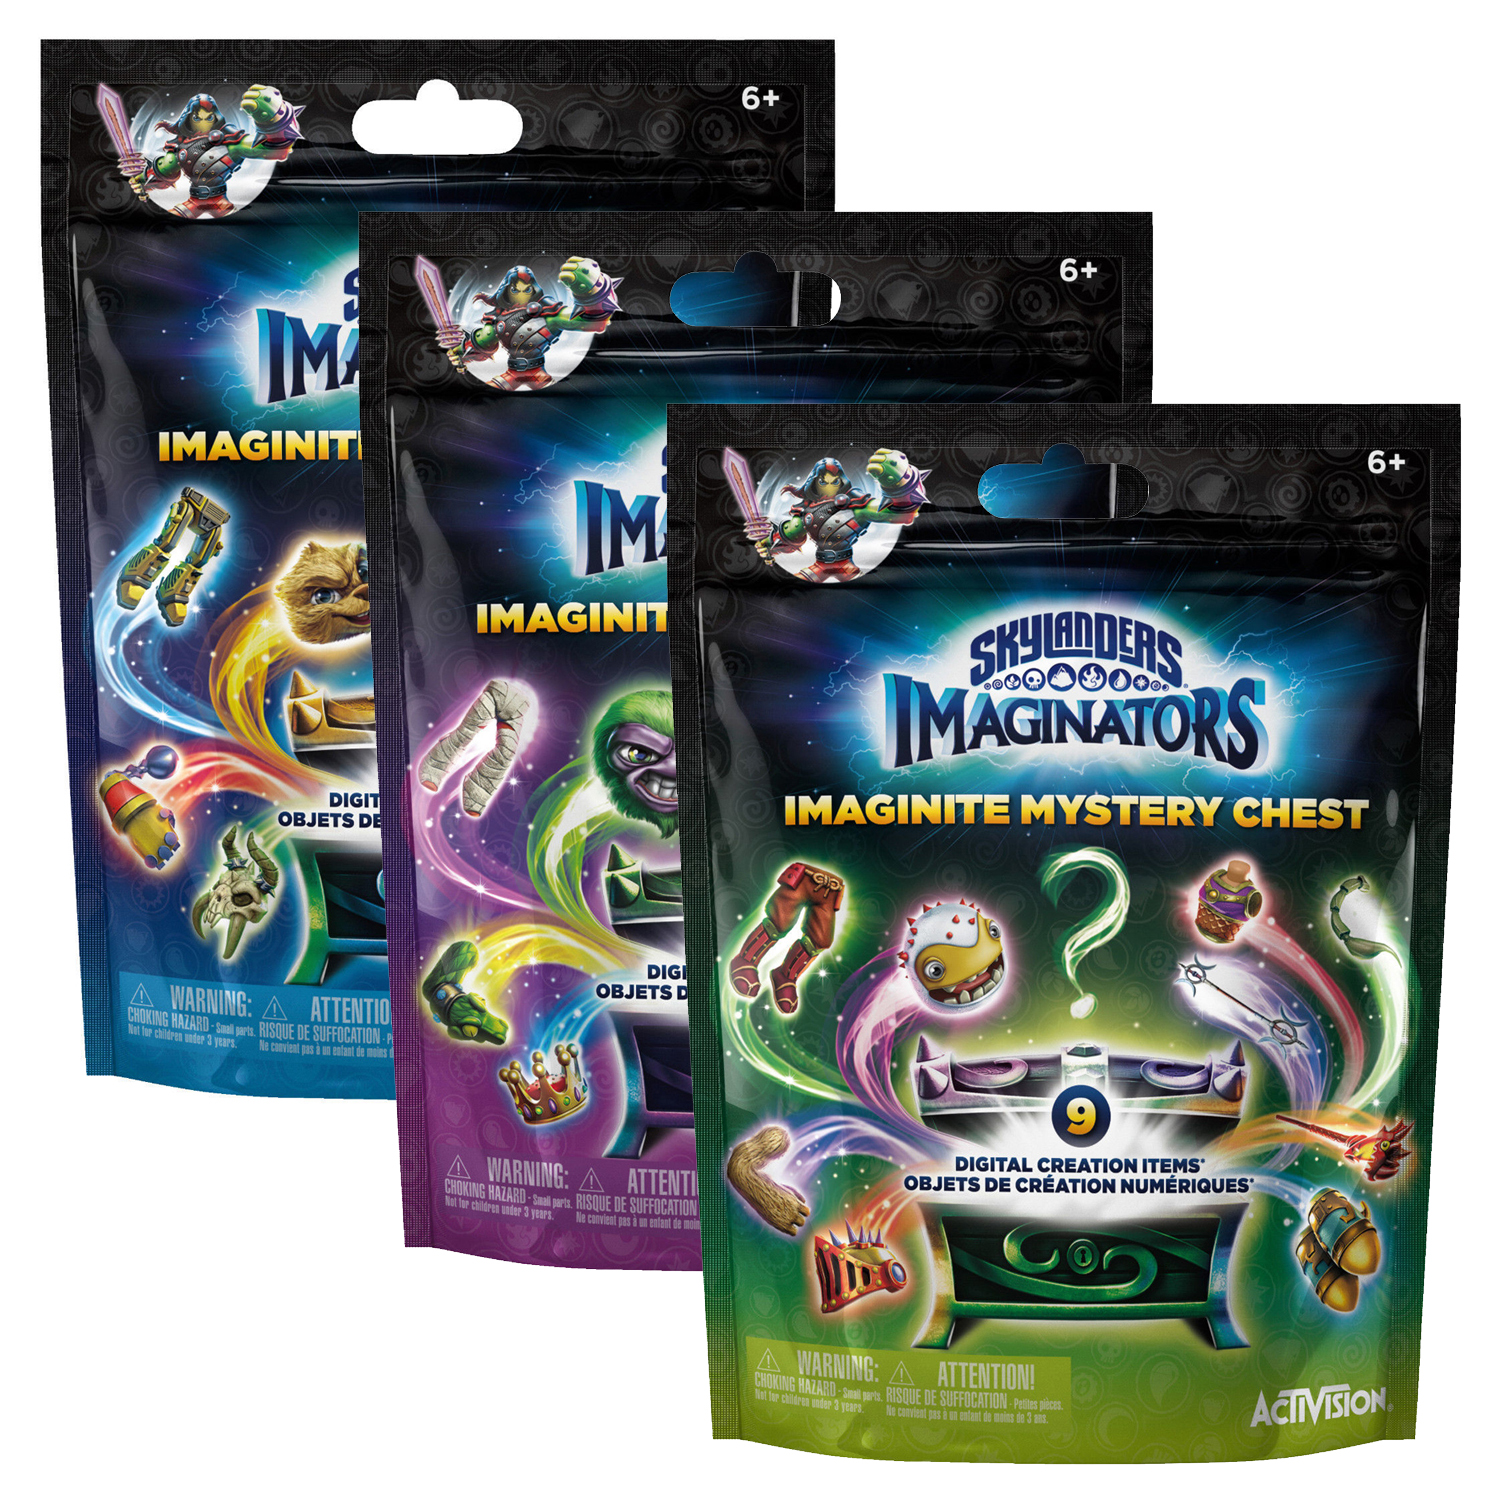 Skylanders Imaginators - Imaginite Mystery Chest